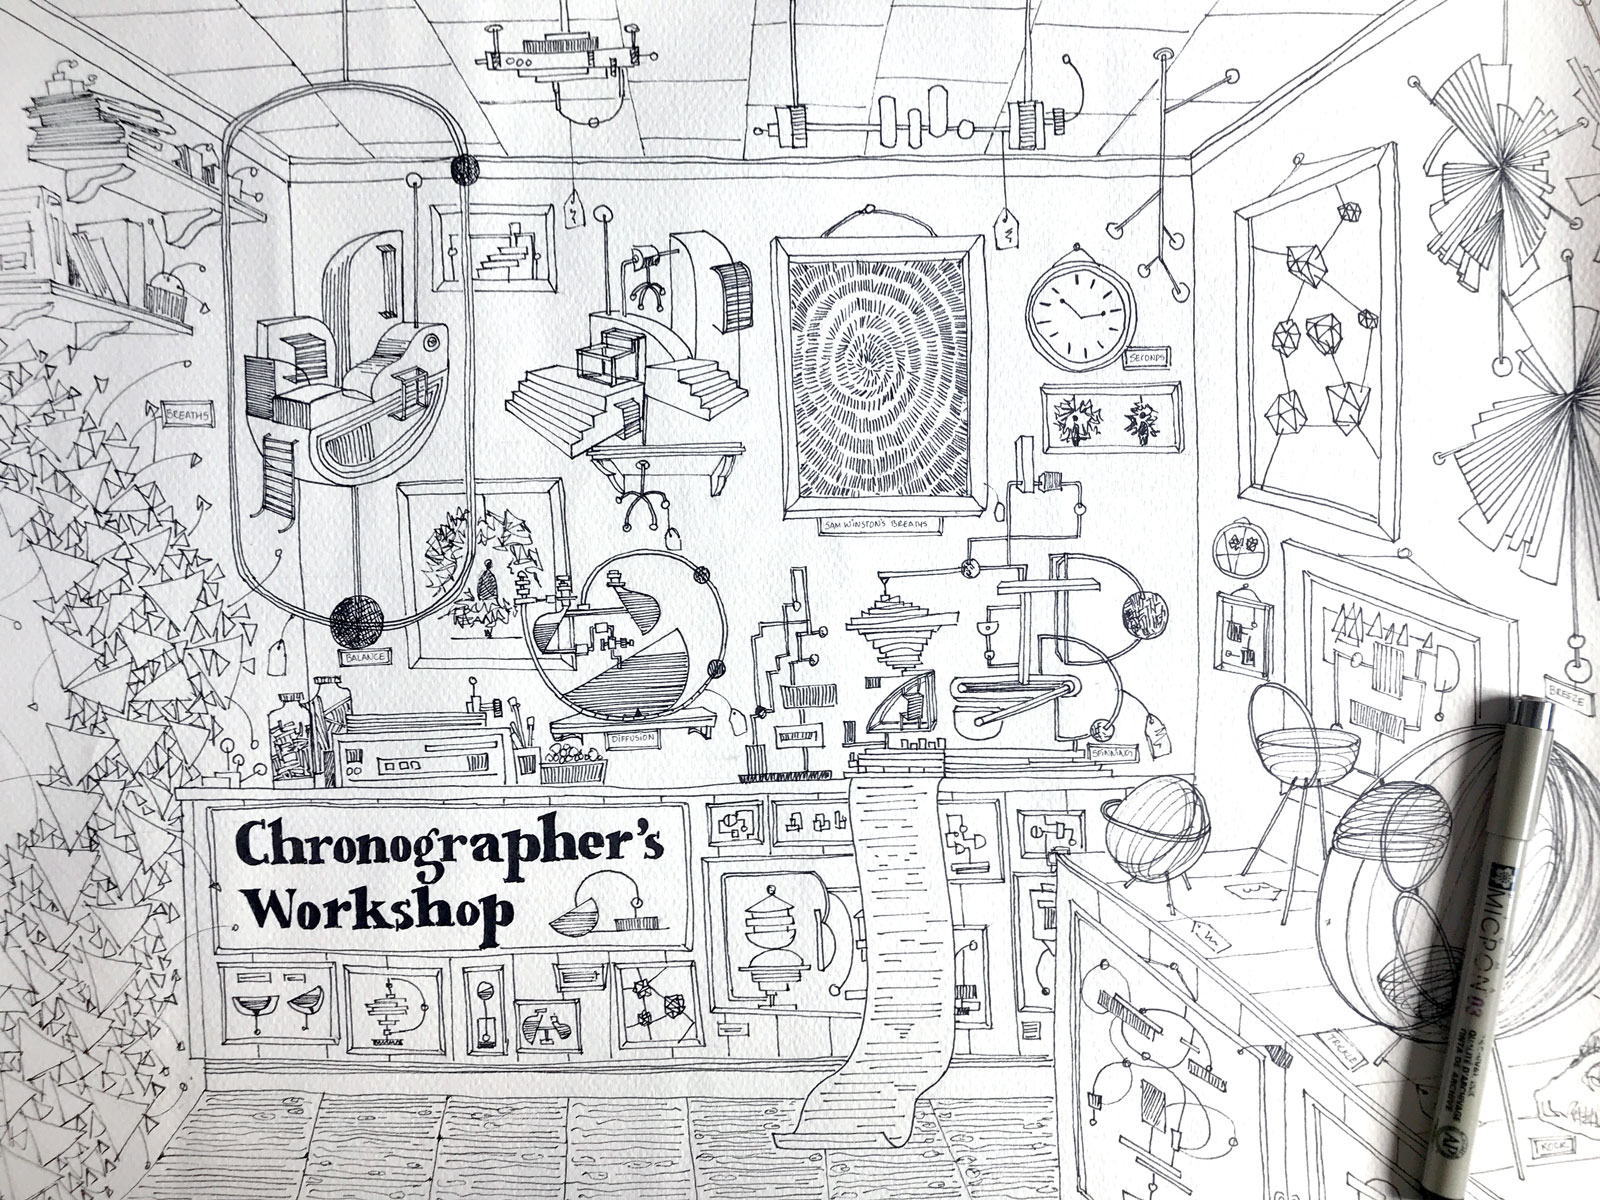 An early blueprint of the Chronographer's Workshop